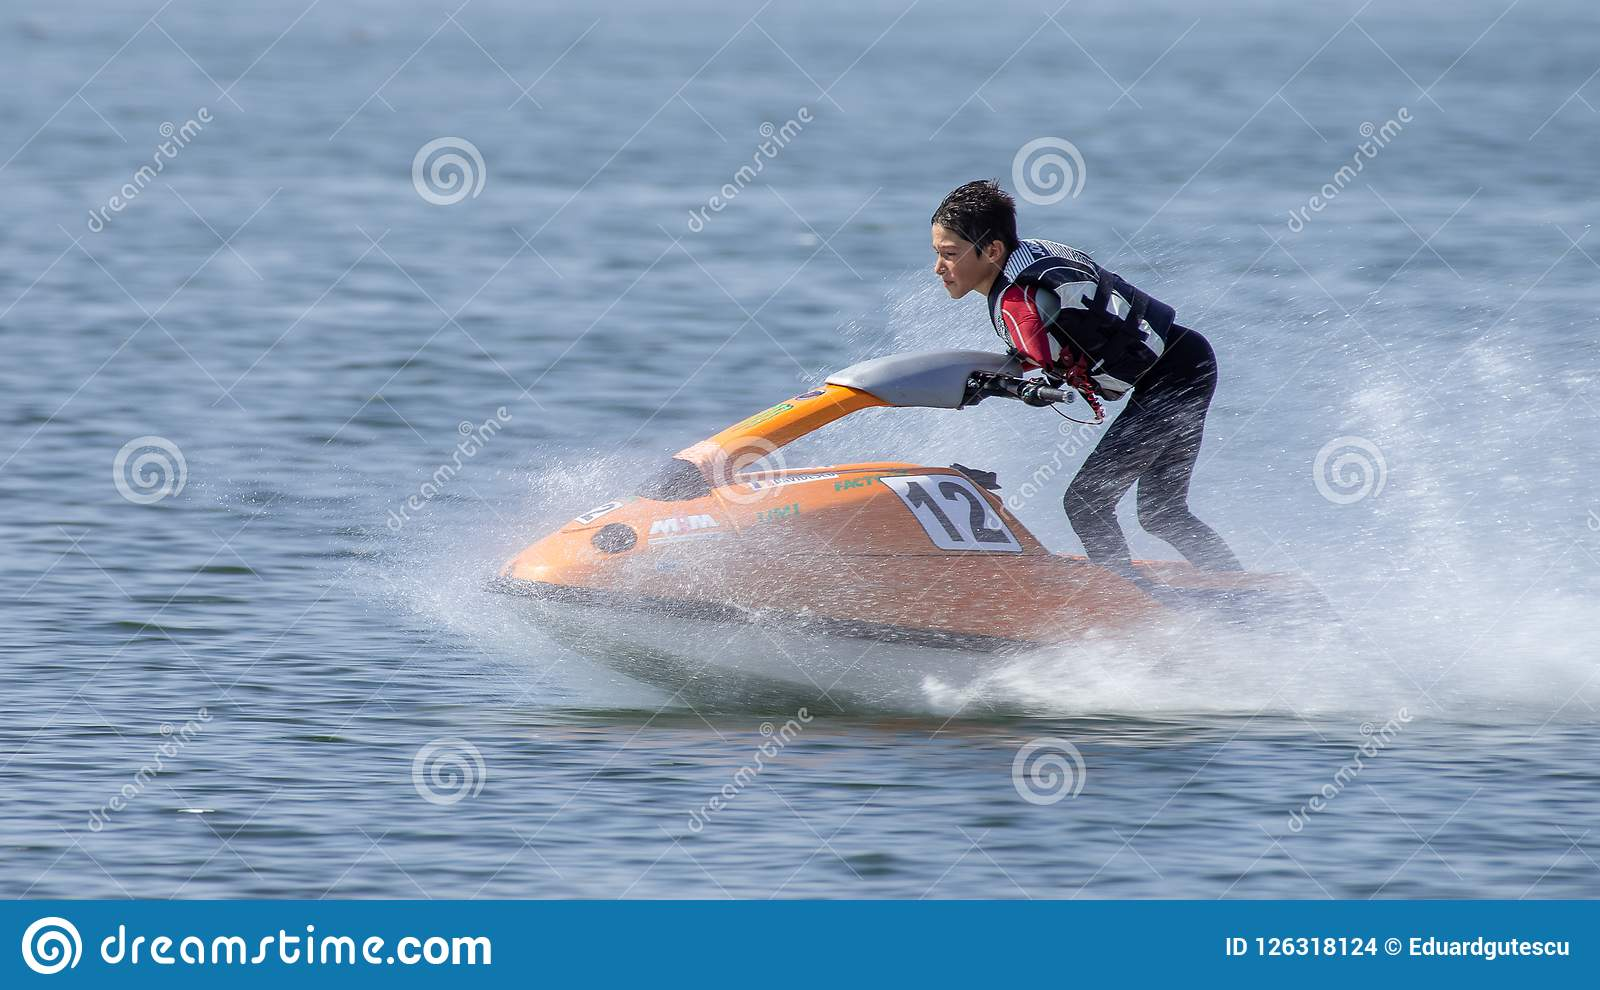 Teenager on Jet Ski-Water Sports in the summer having fun on the beach